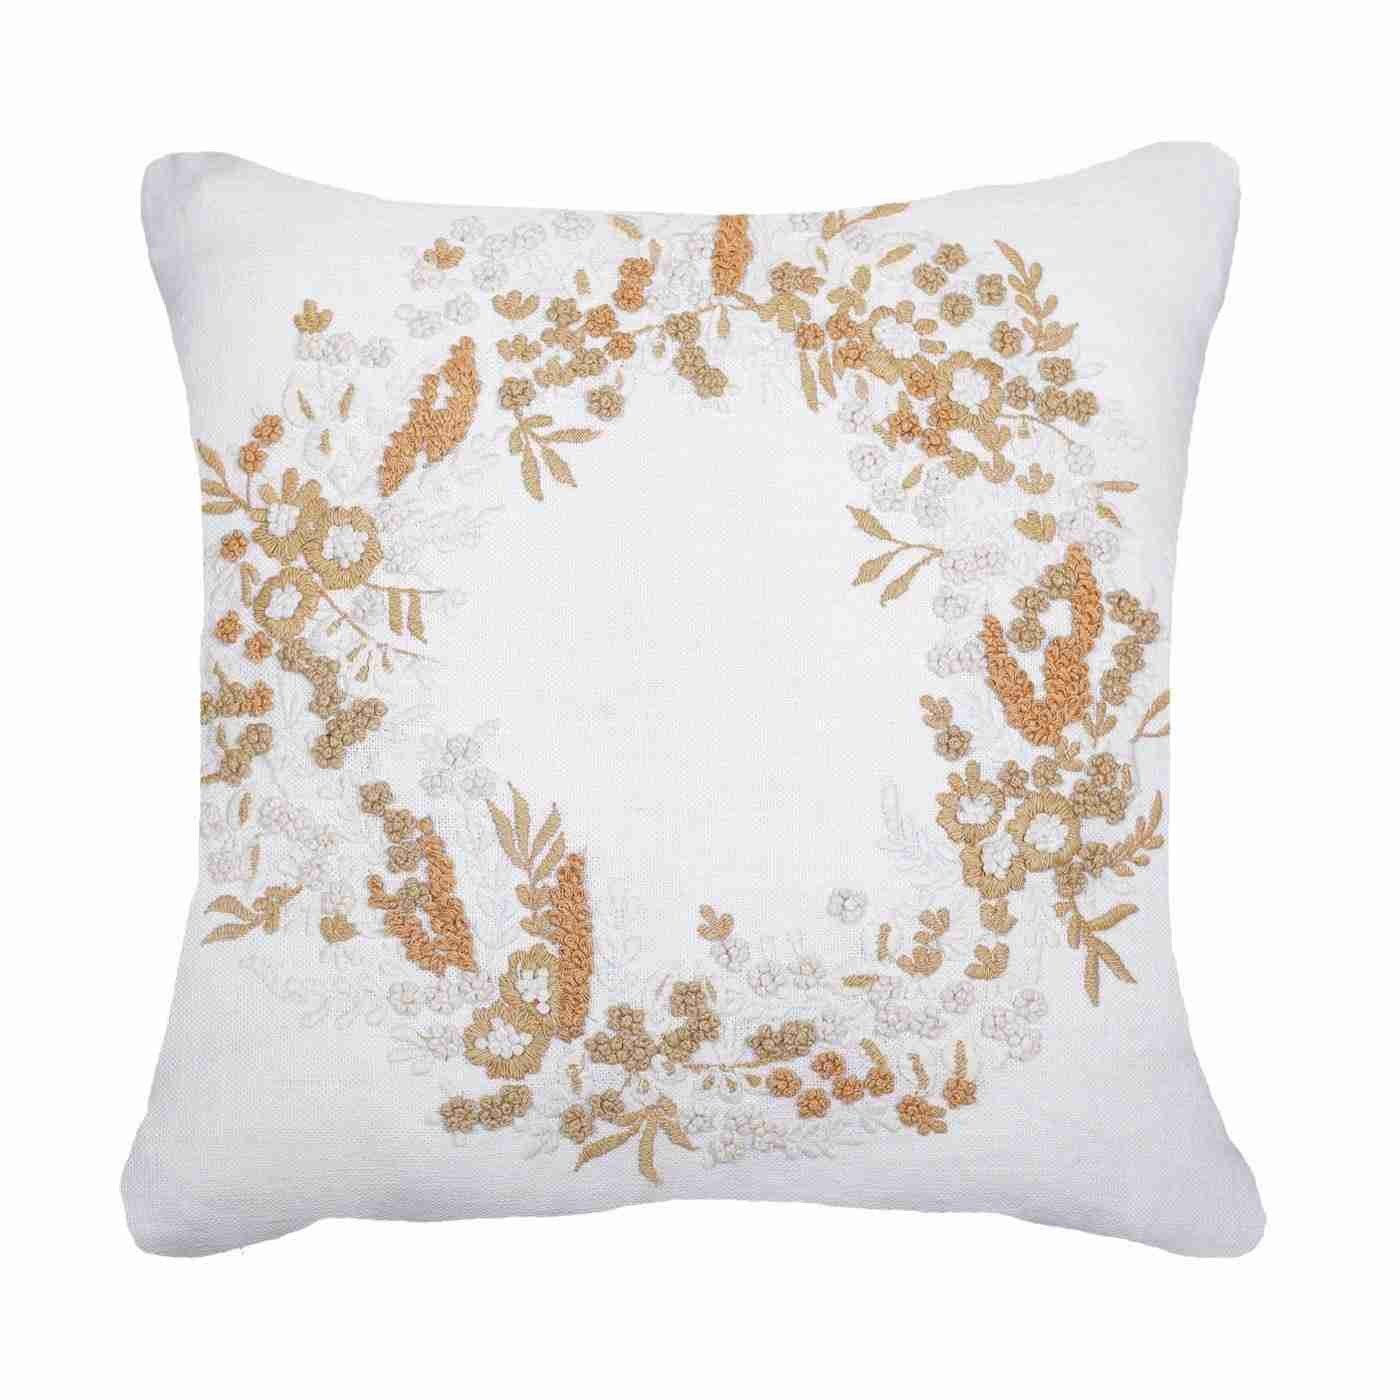 Bandhini Homewear Design Medium Cushion White Gold / Exotic Light / 19 x 19 Gold Wreath Linen Medium Cushion 50x50cm